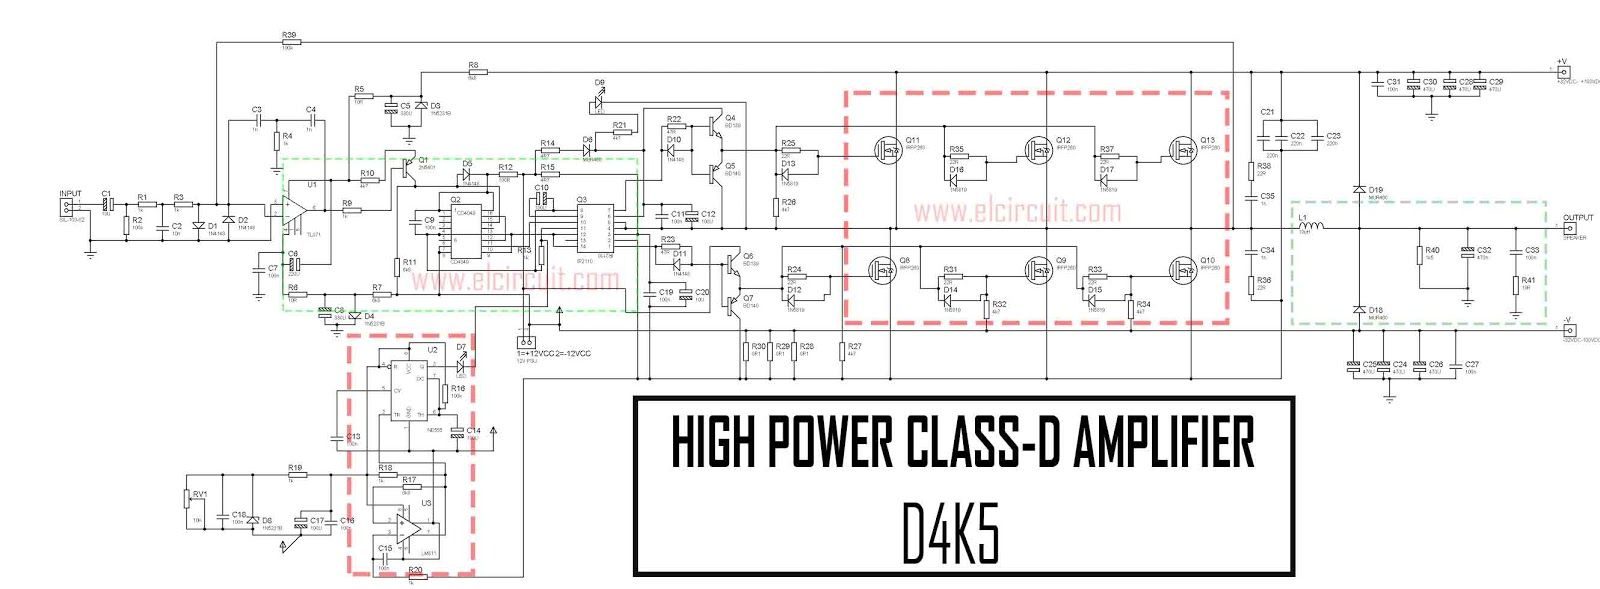 medium resolution of high power lifier circuit diagram besides h bridge inverter circuit high power class d amplifier d4k5